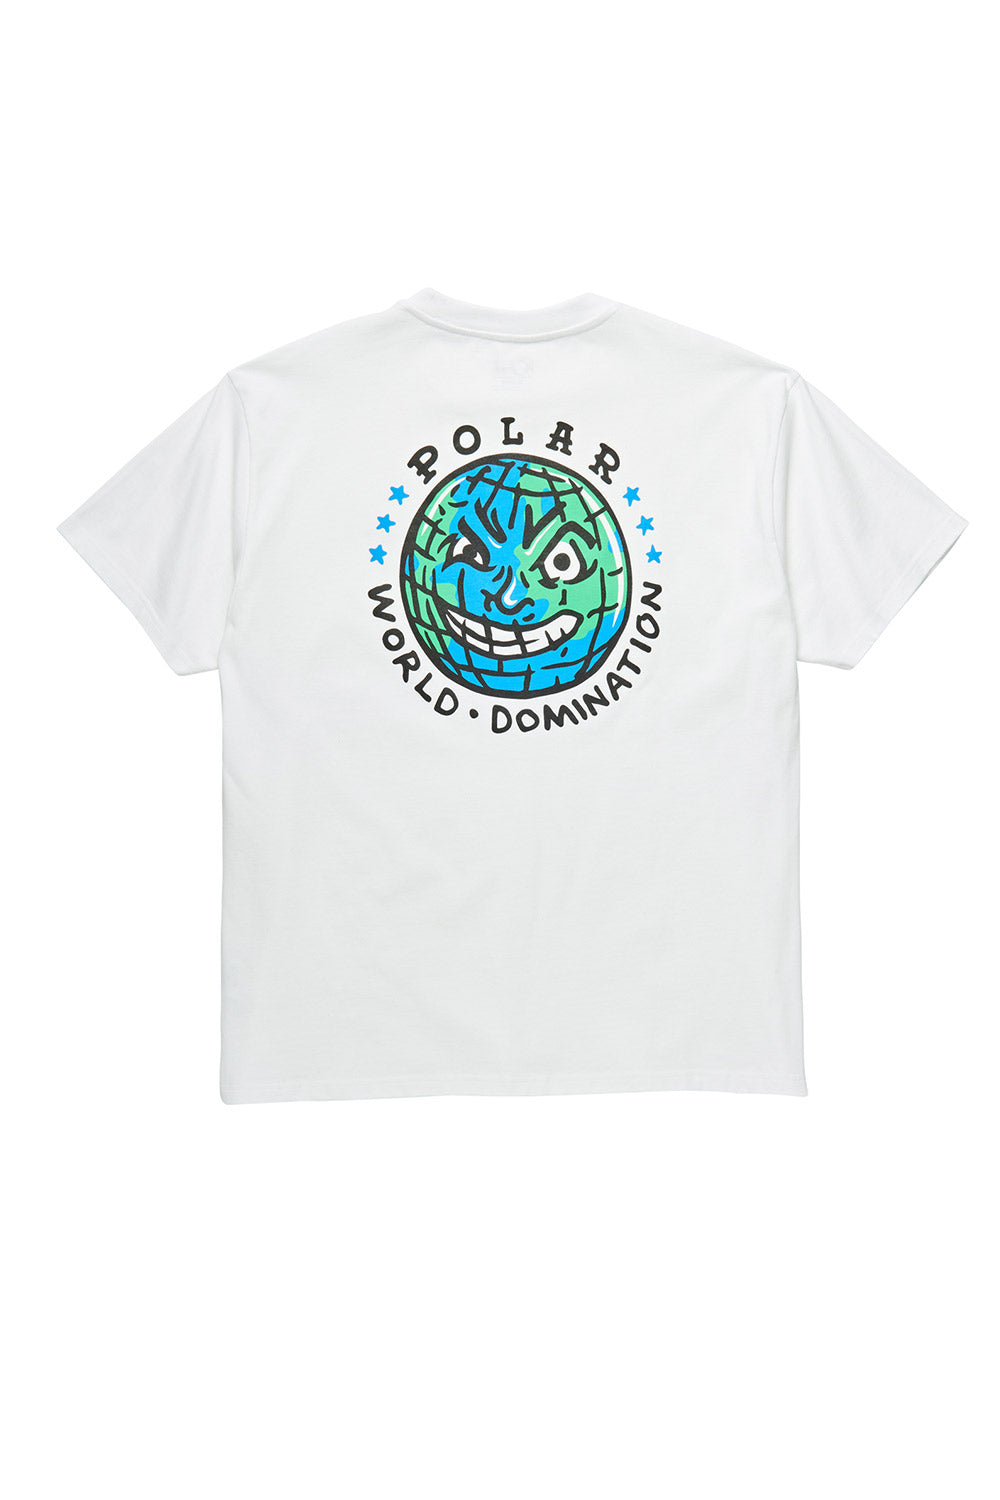 Polar Skate Co P.W.D Tee - White | Buy Polar Skate Co Online